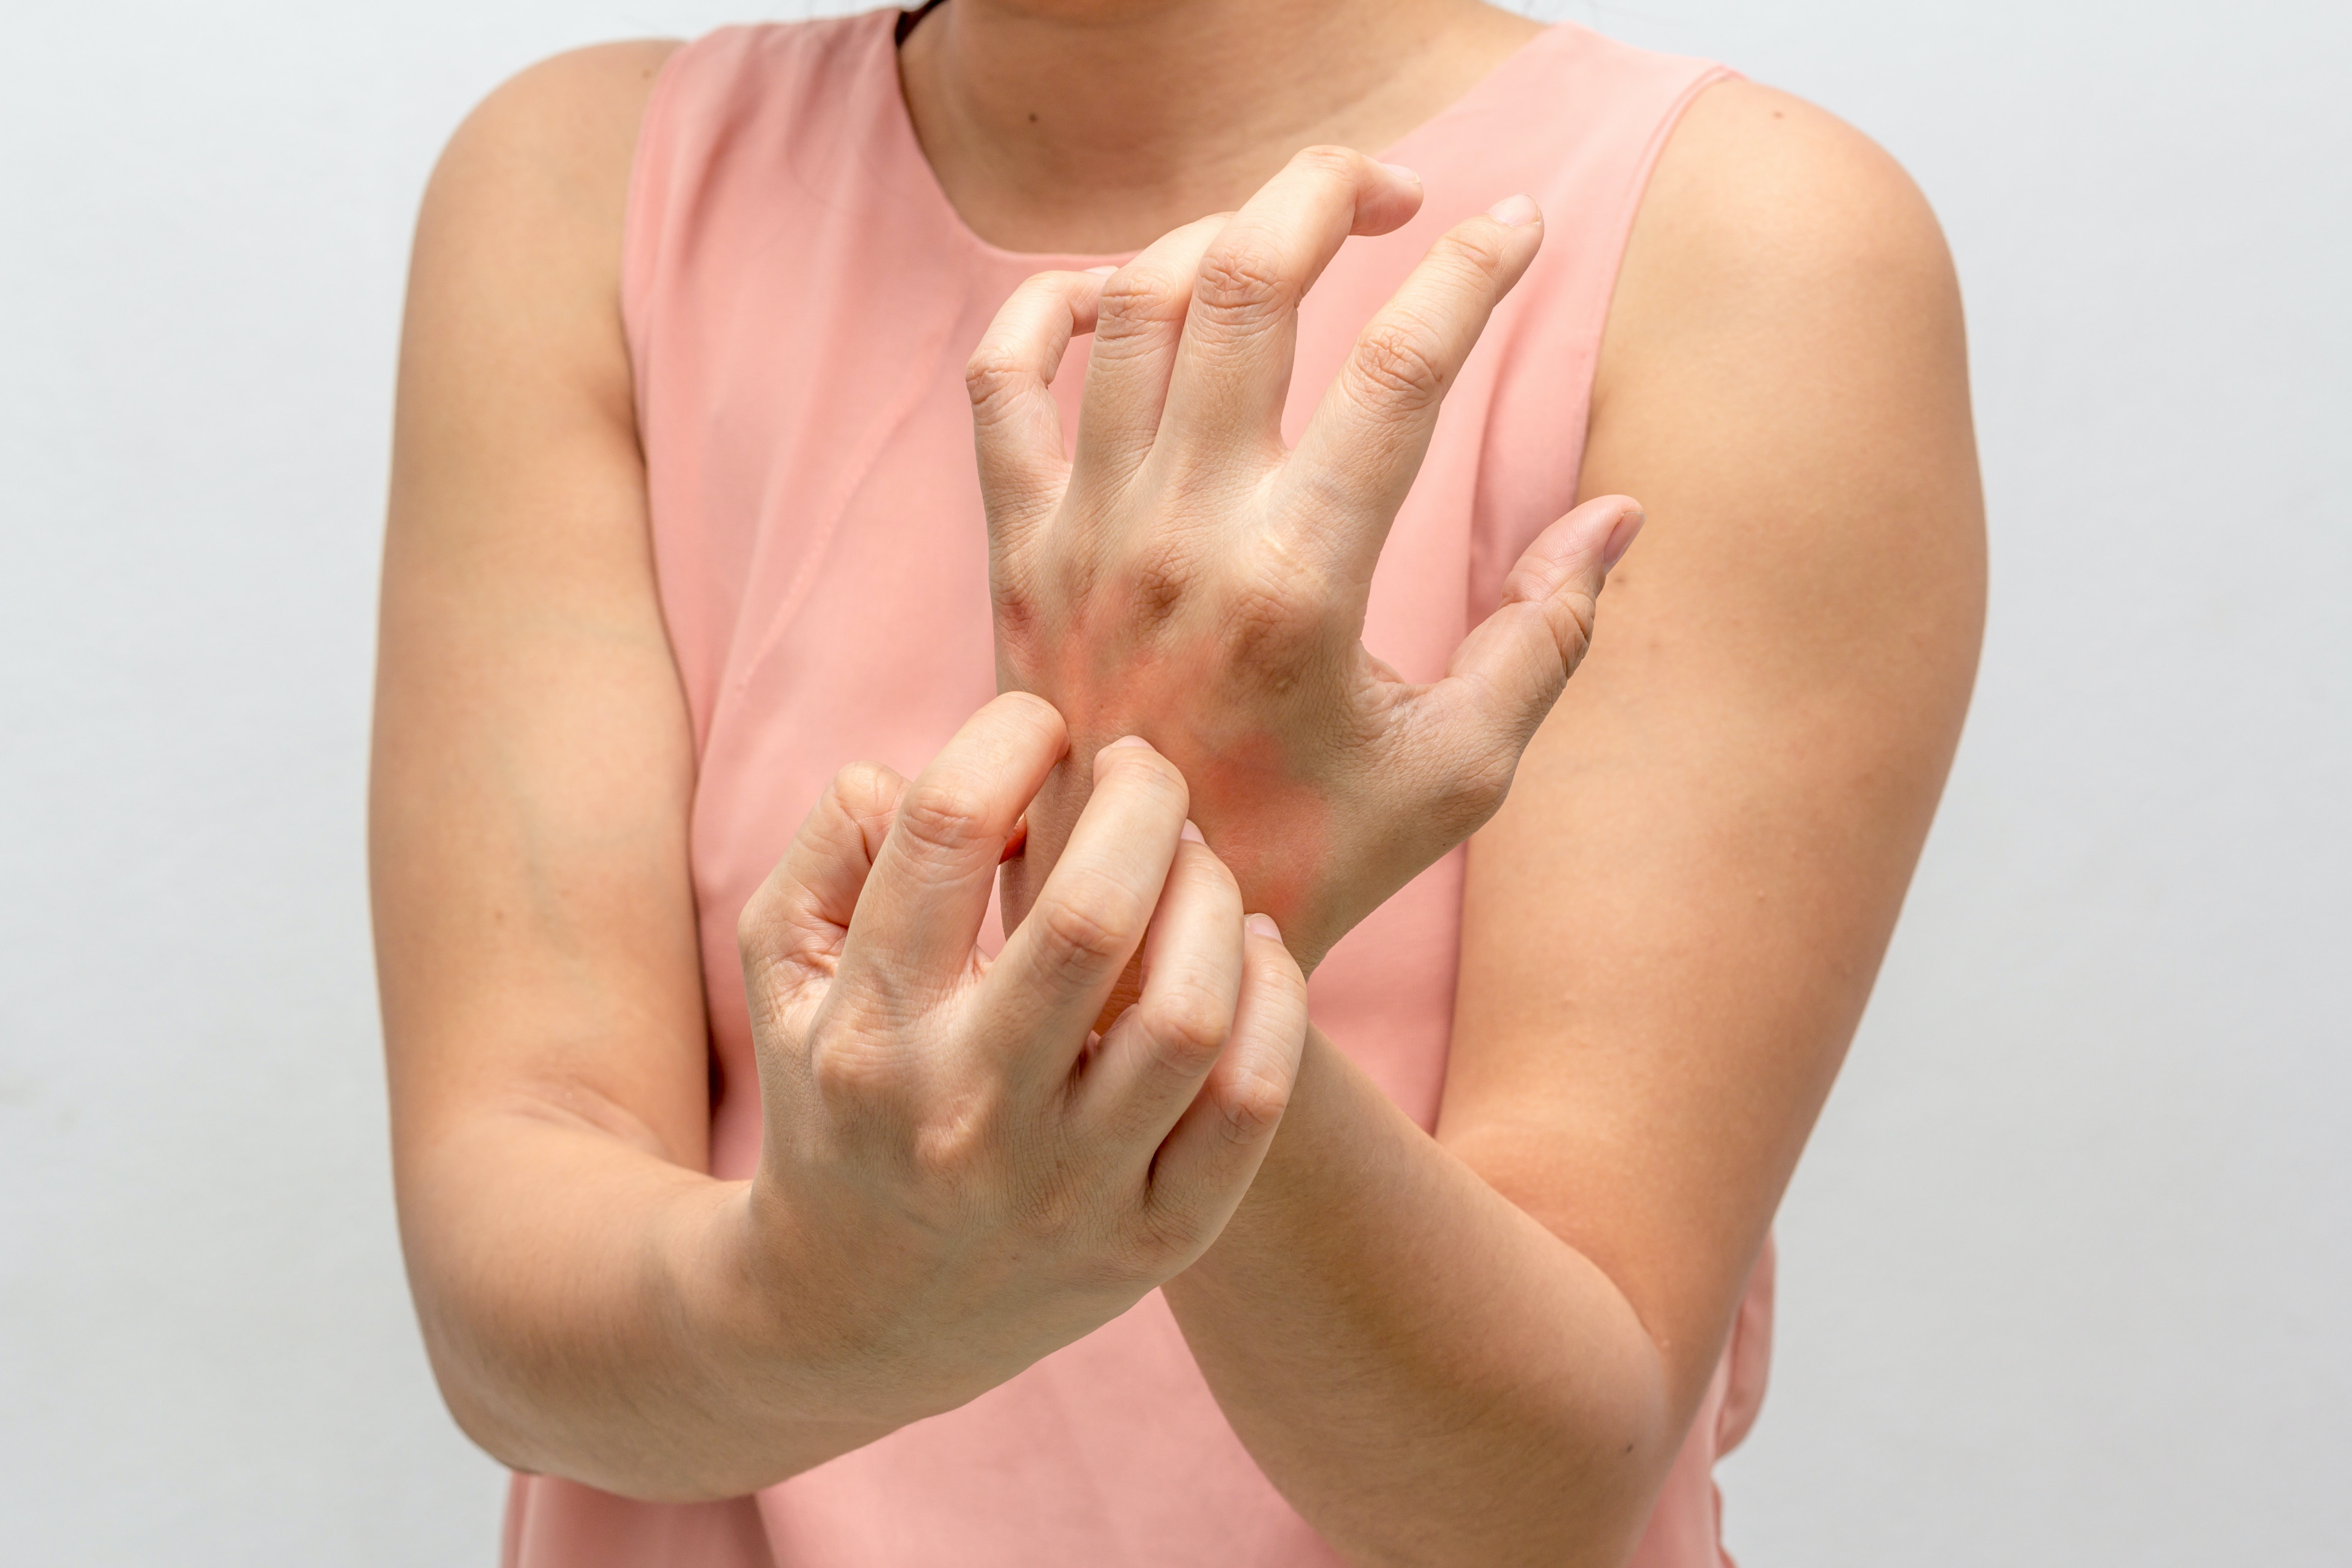 An image depicting a person suffering from hand itch symptoms